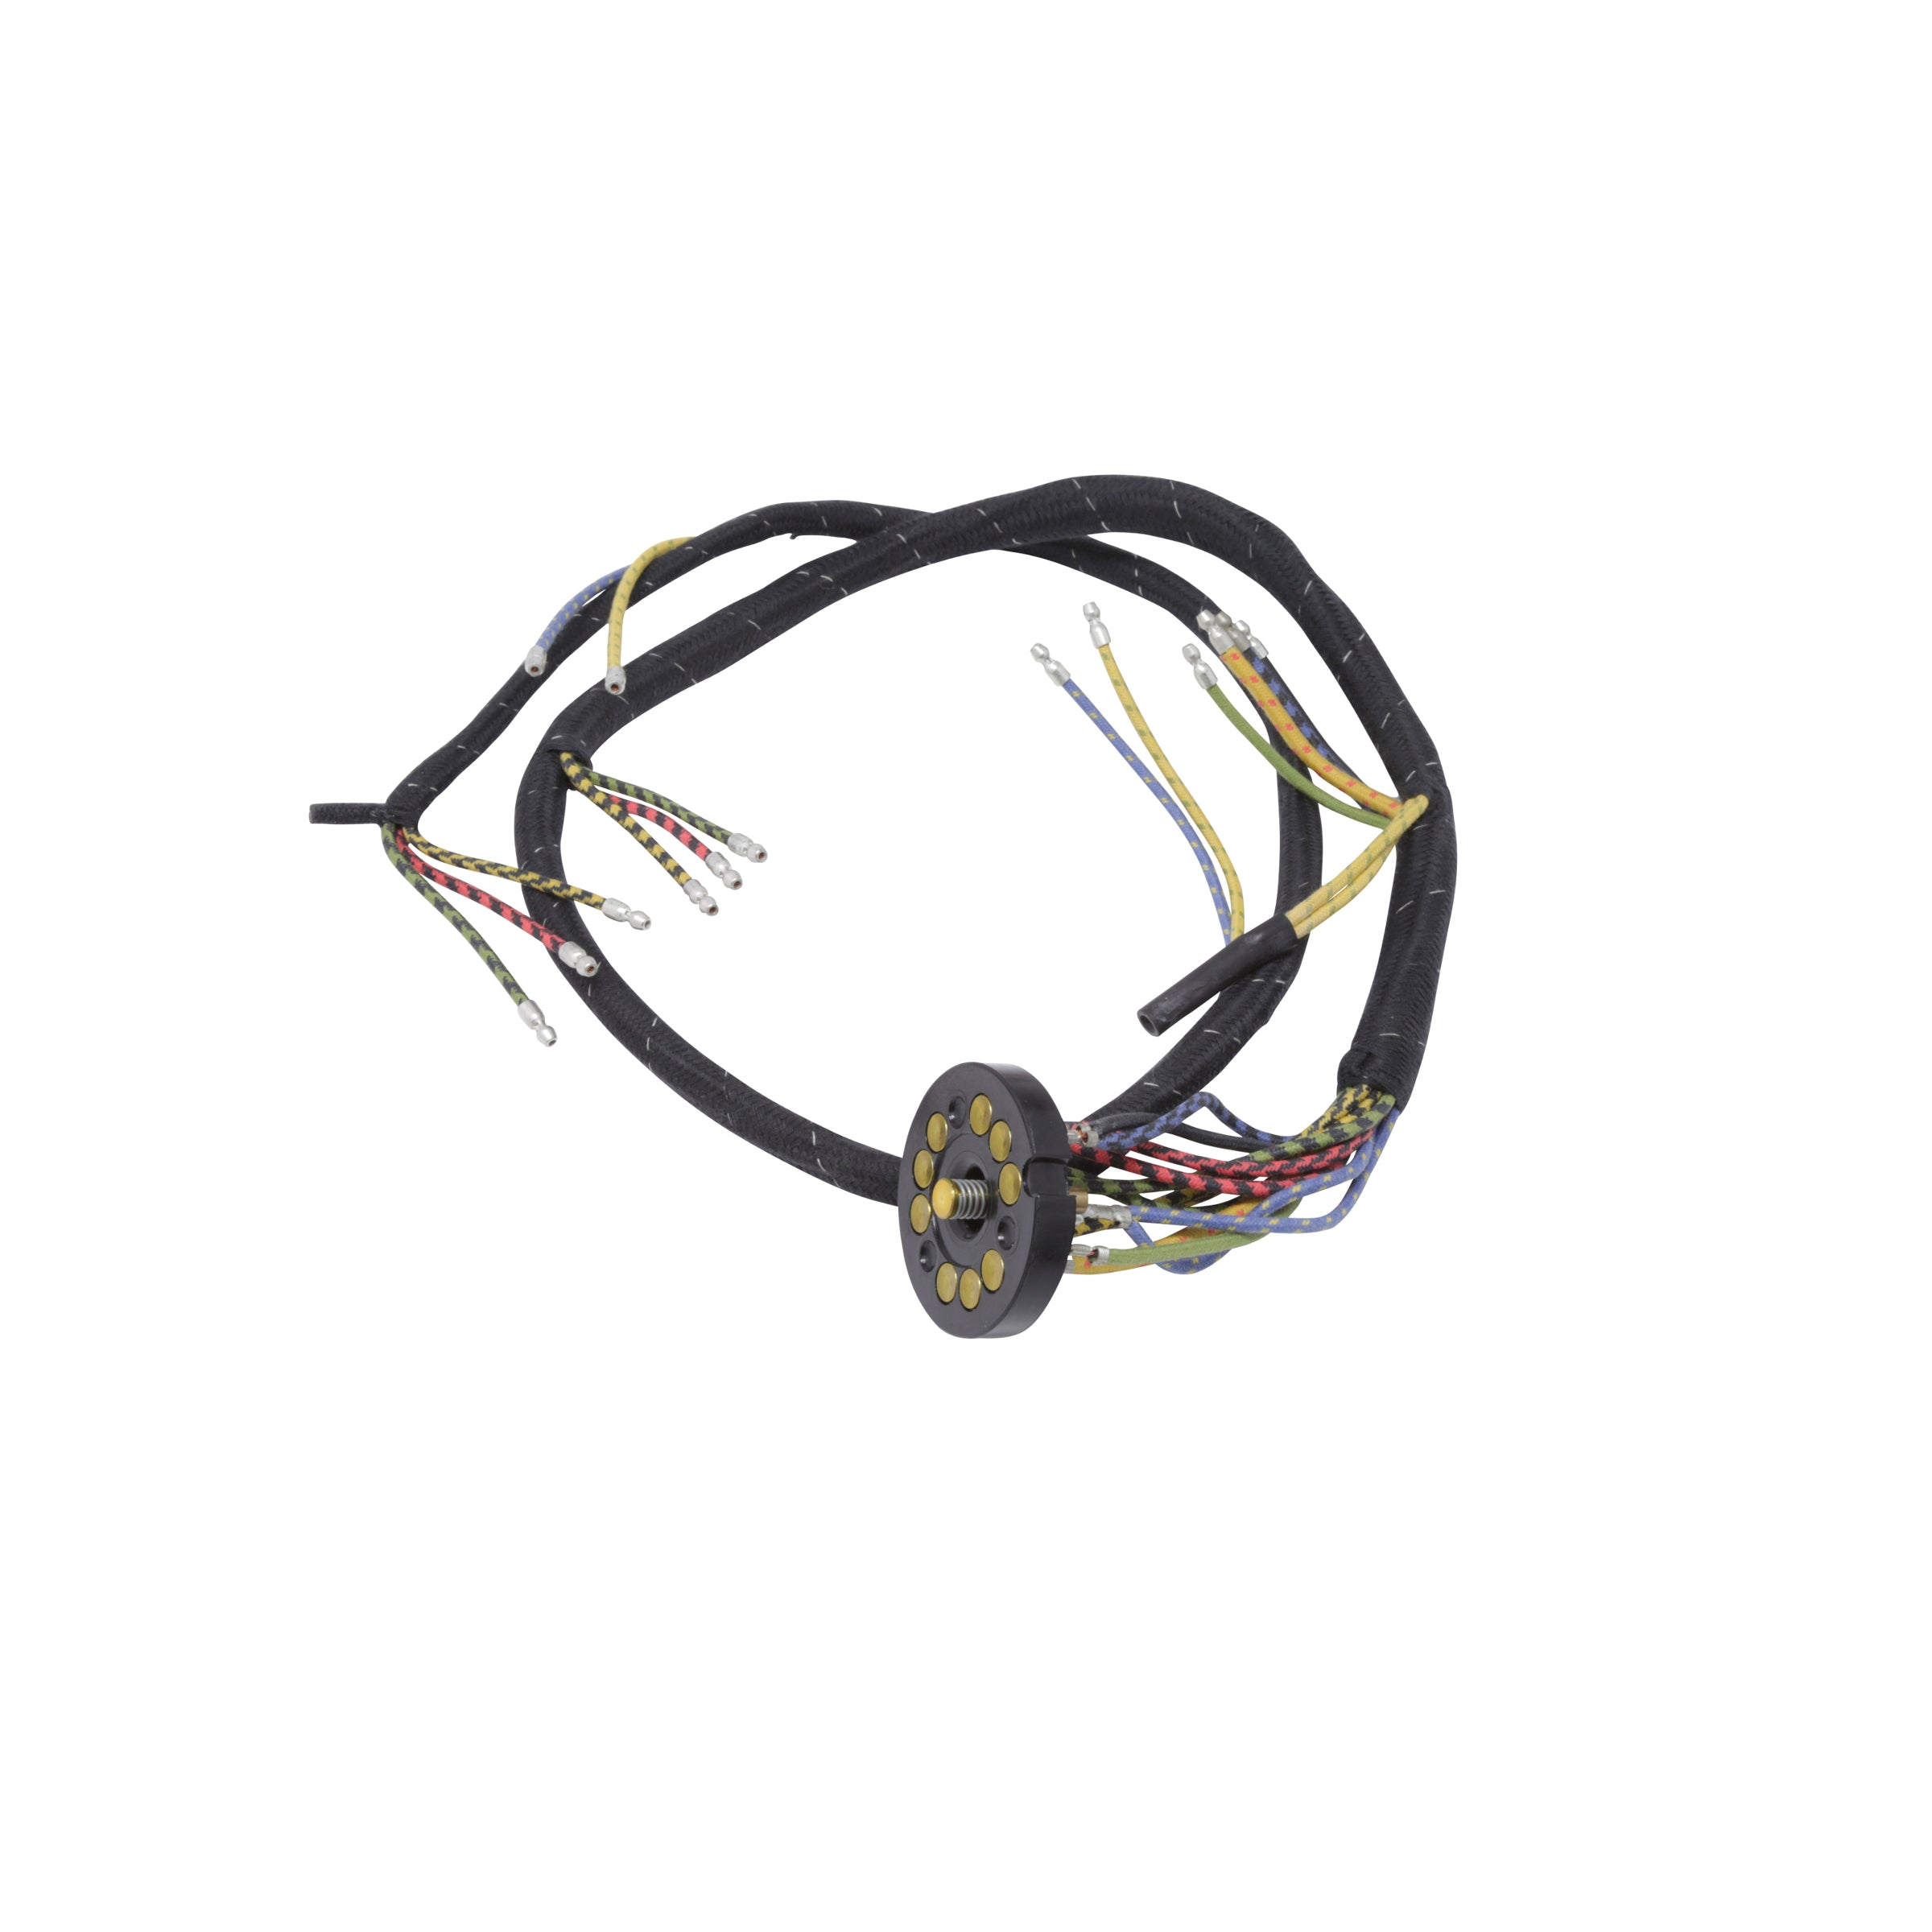 Headlight Wiring Harness • 1937 Ford Passenger Deluxe